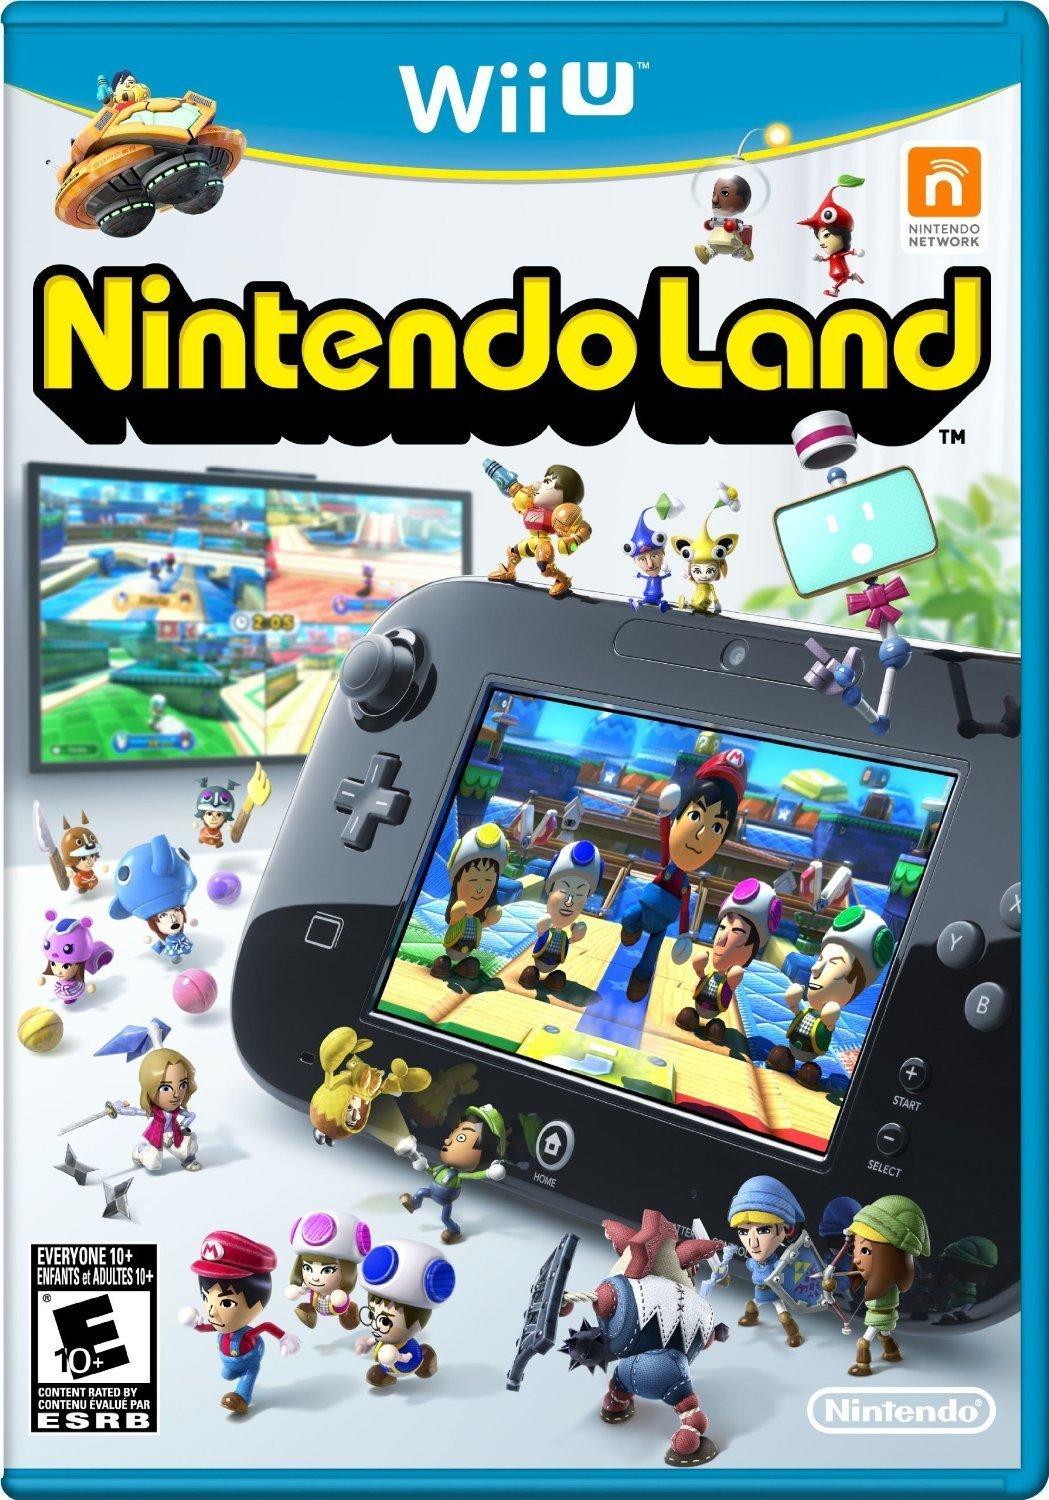 Amazon.com: Nintendo Land: Nintendo of America: Video Games